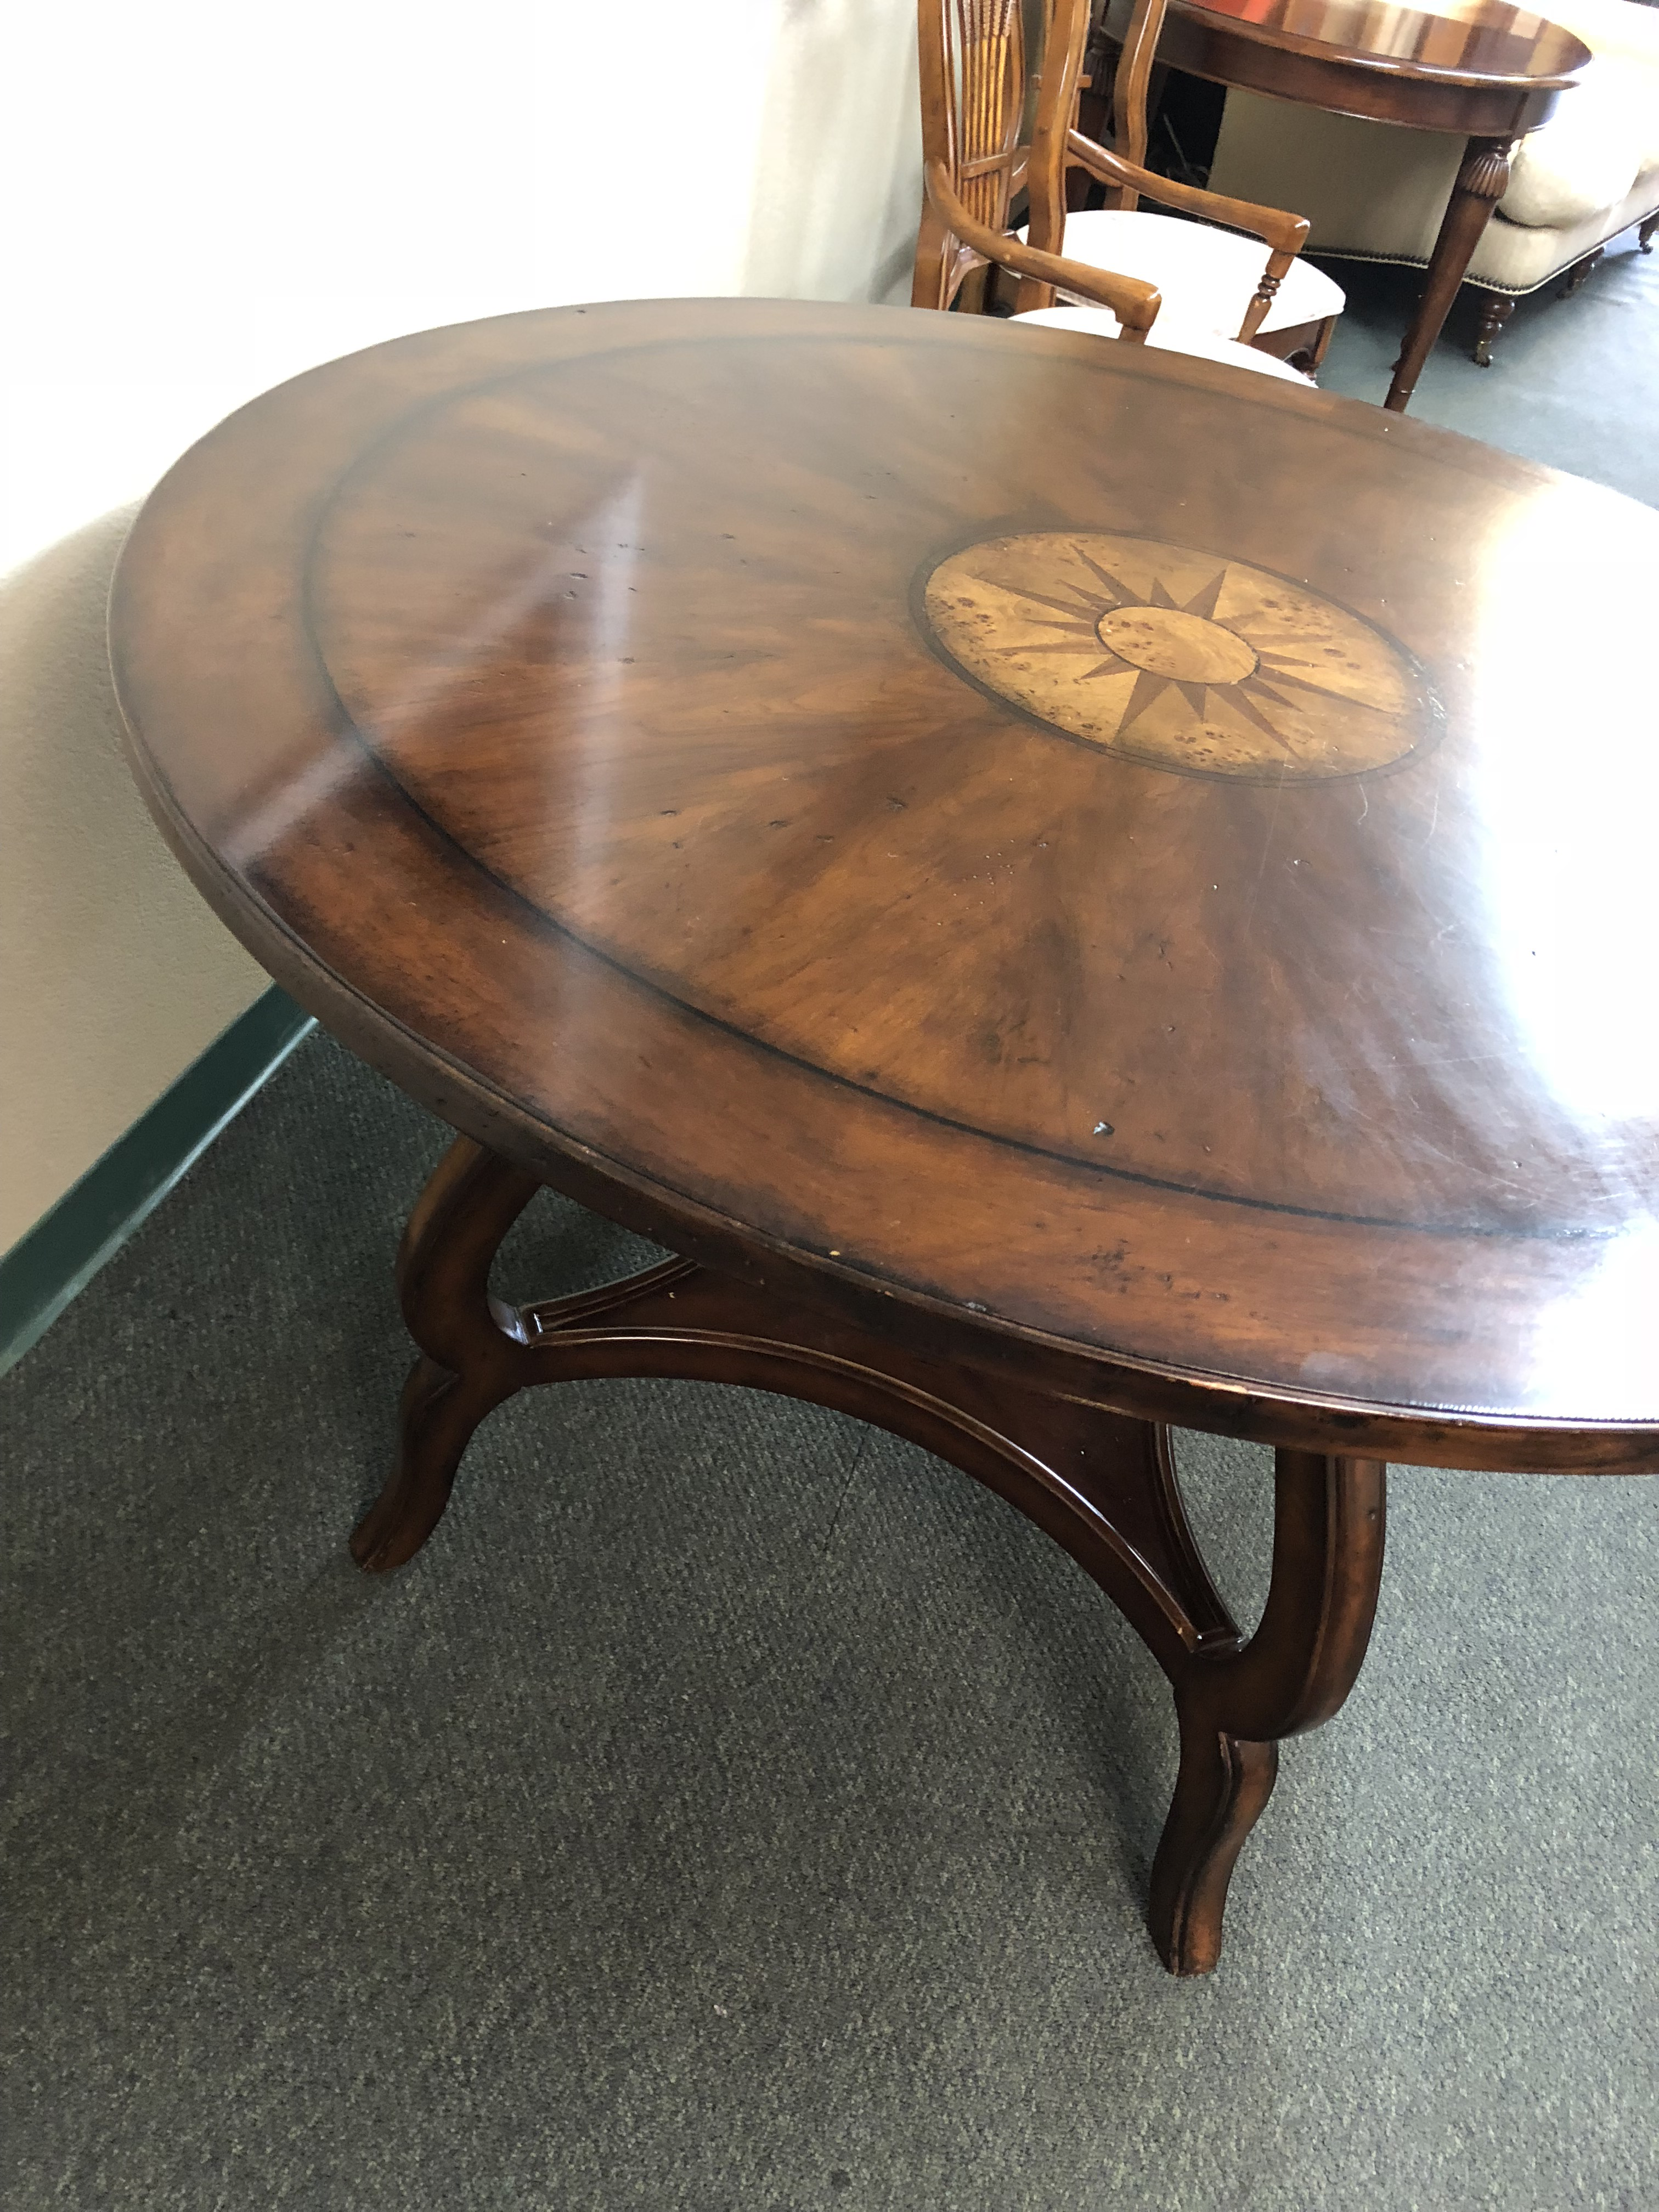 2000s Compass Rose Table By Woodbridge Furniture For Sale   Image 5 Of 13